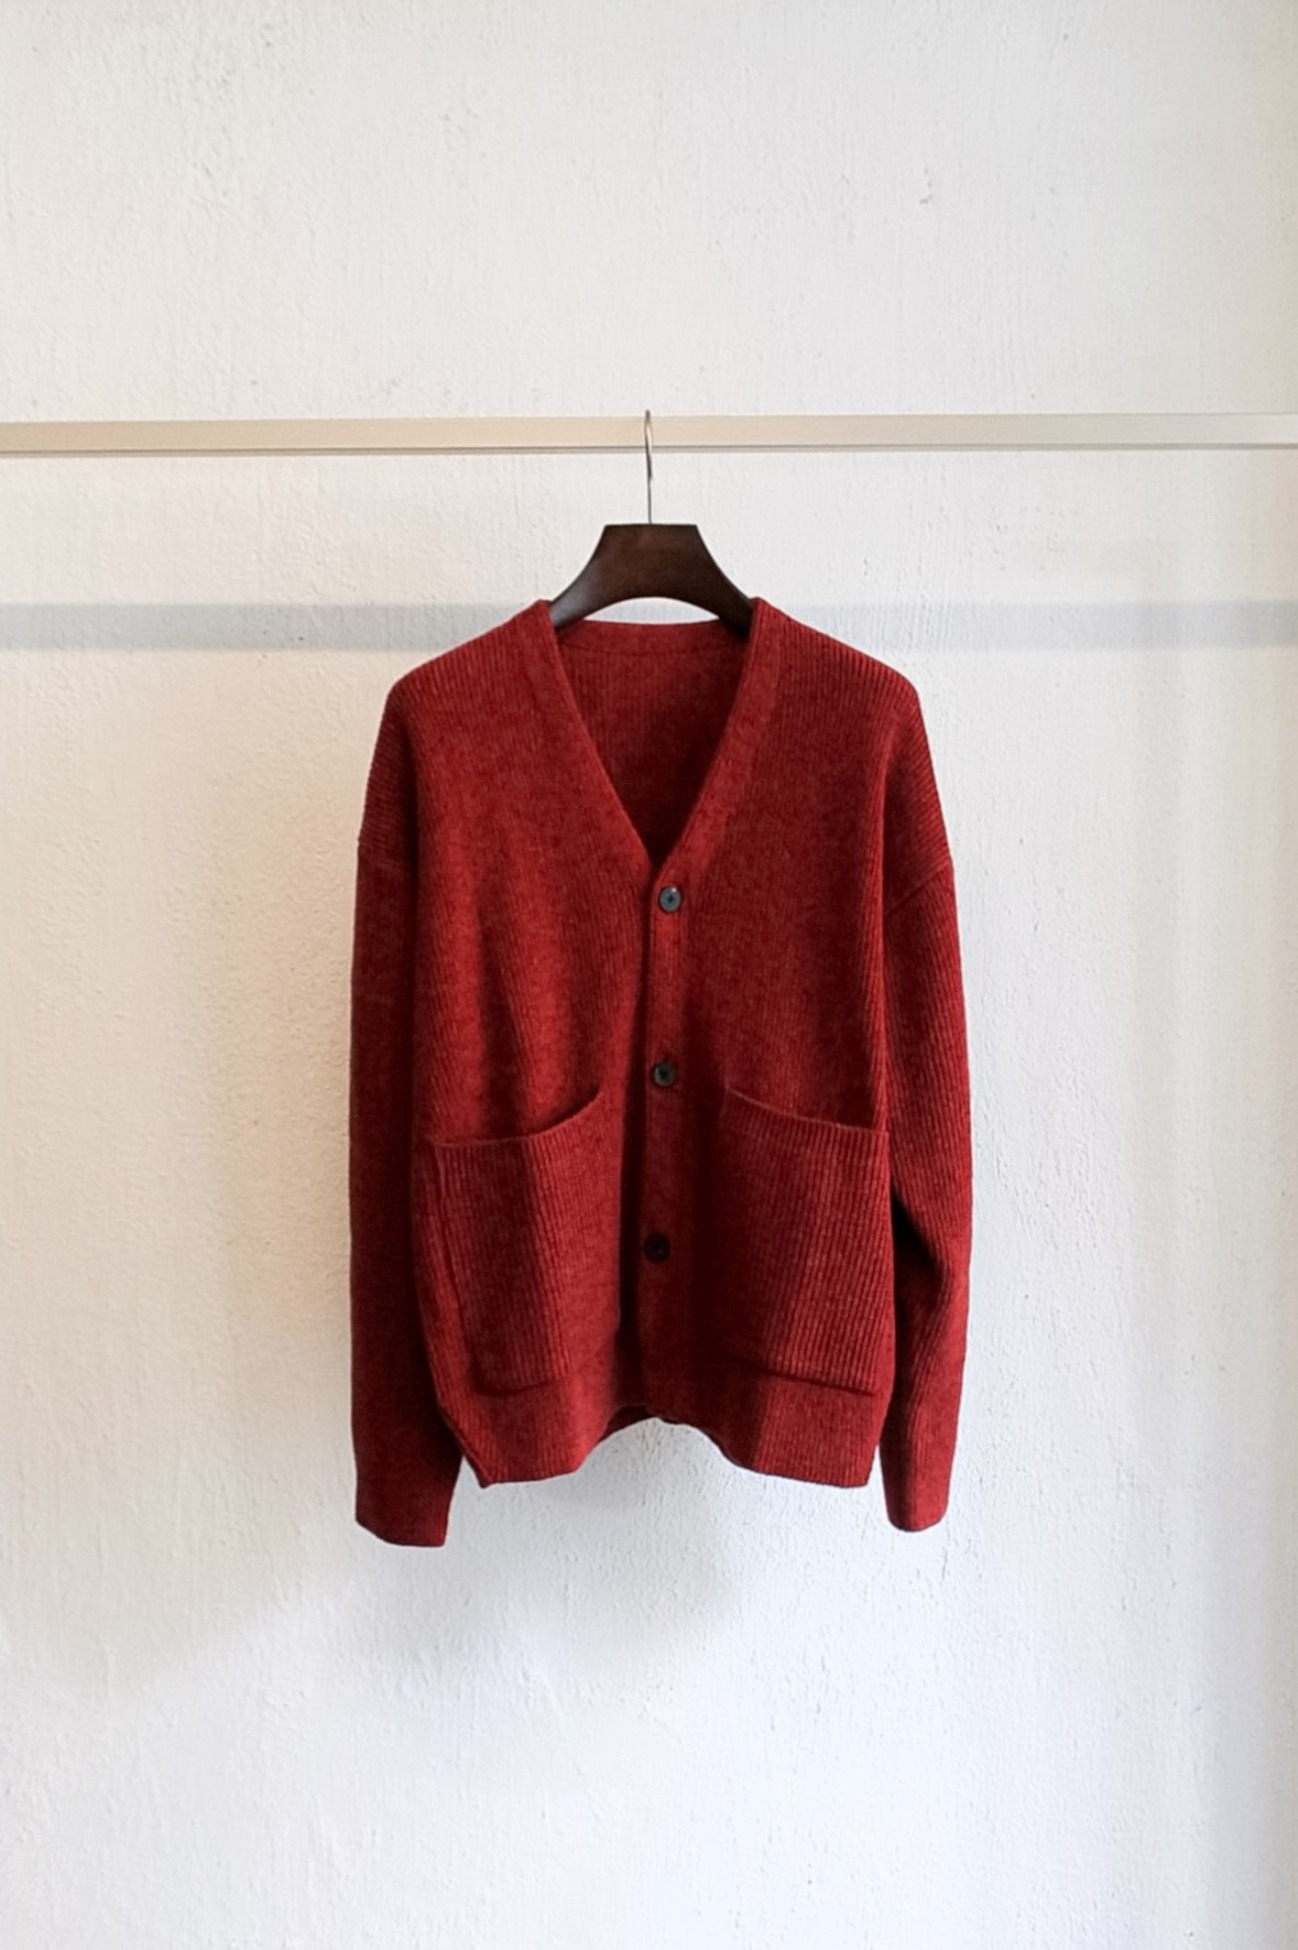 [DOCUMENT] Wool Blend V Cardigan - Brick Red